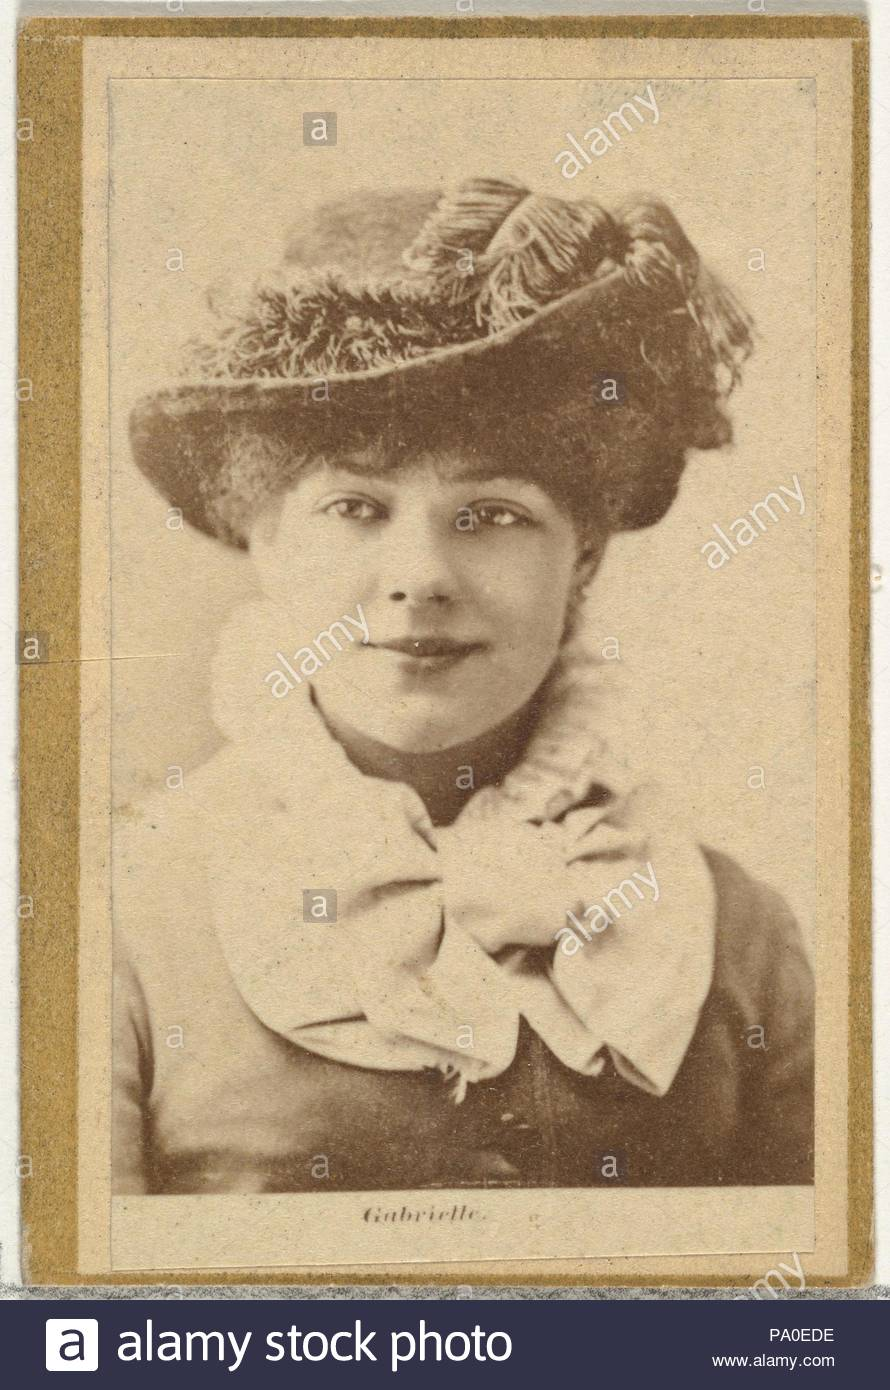 Gabrielle From Thees And Celebrities Series N Promoting Little Beauties Cigarettes For Allen Ginternd Tobacco Products 1887